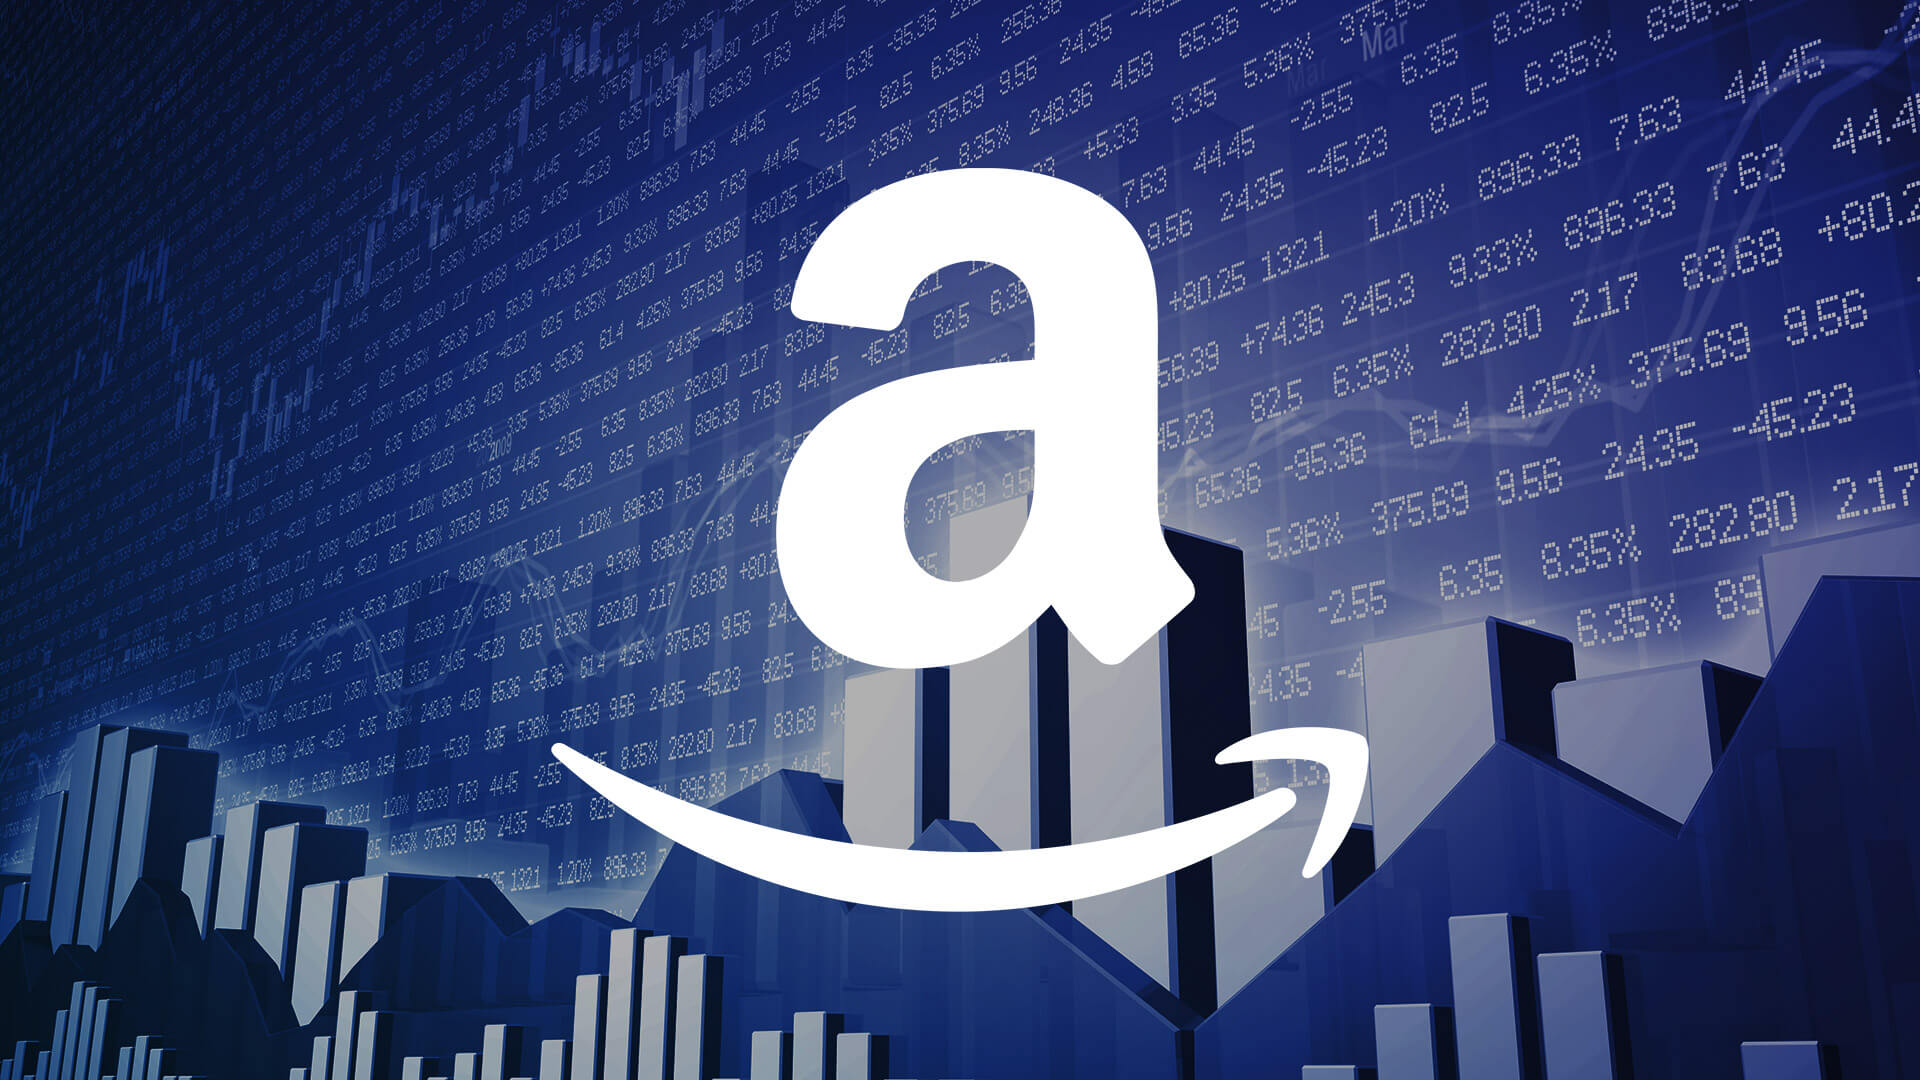 amazon-earnings-stock-ss-1920